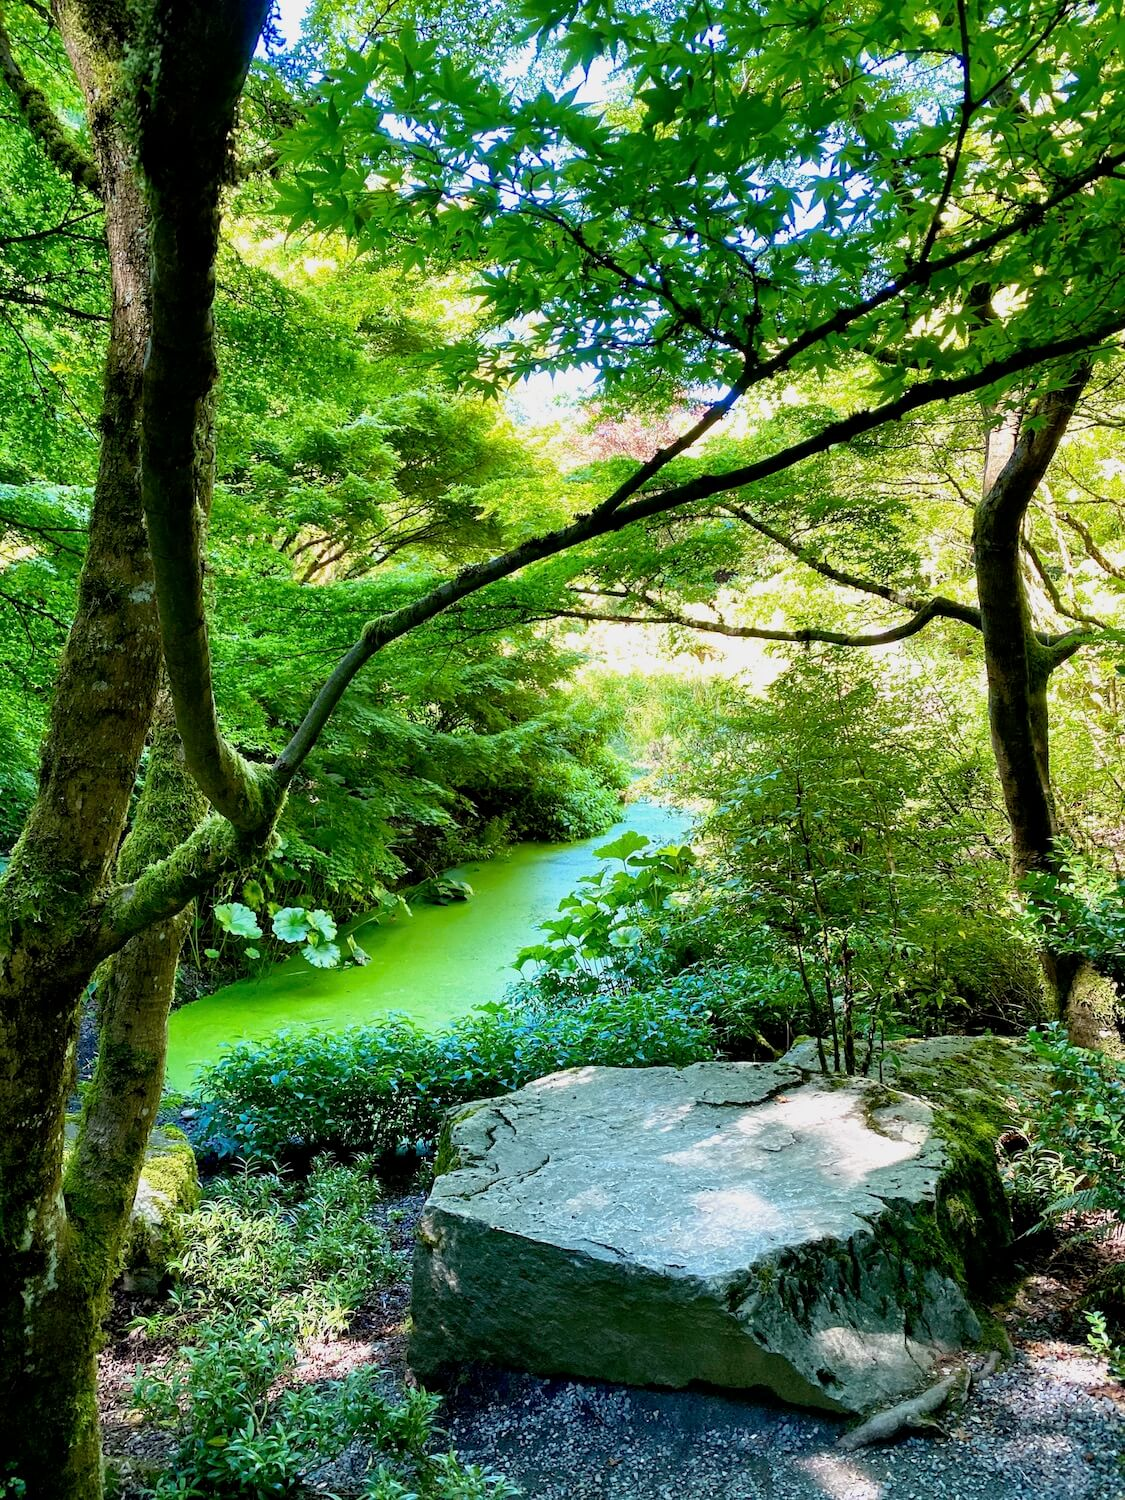 The Yao Garden is one of the most inspiring Japanese gardens in Seattle.  Here the pond has accumulated green algae that sits still underneath the curving branches of delicate maple trees.  A large stone commands a presence in the front of the photo.